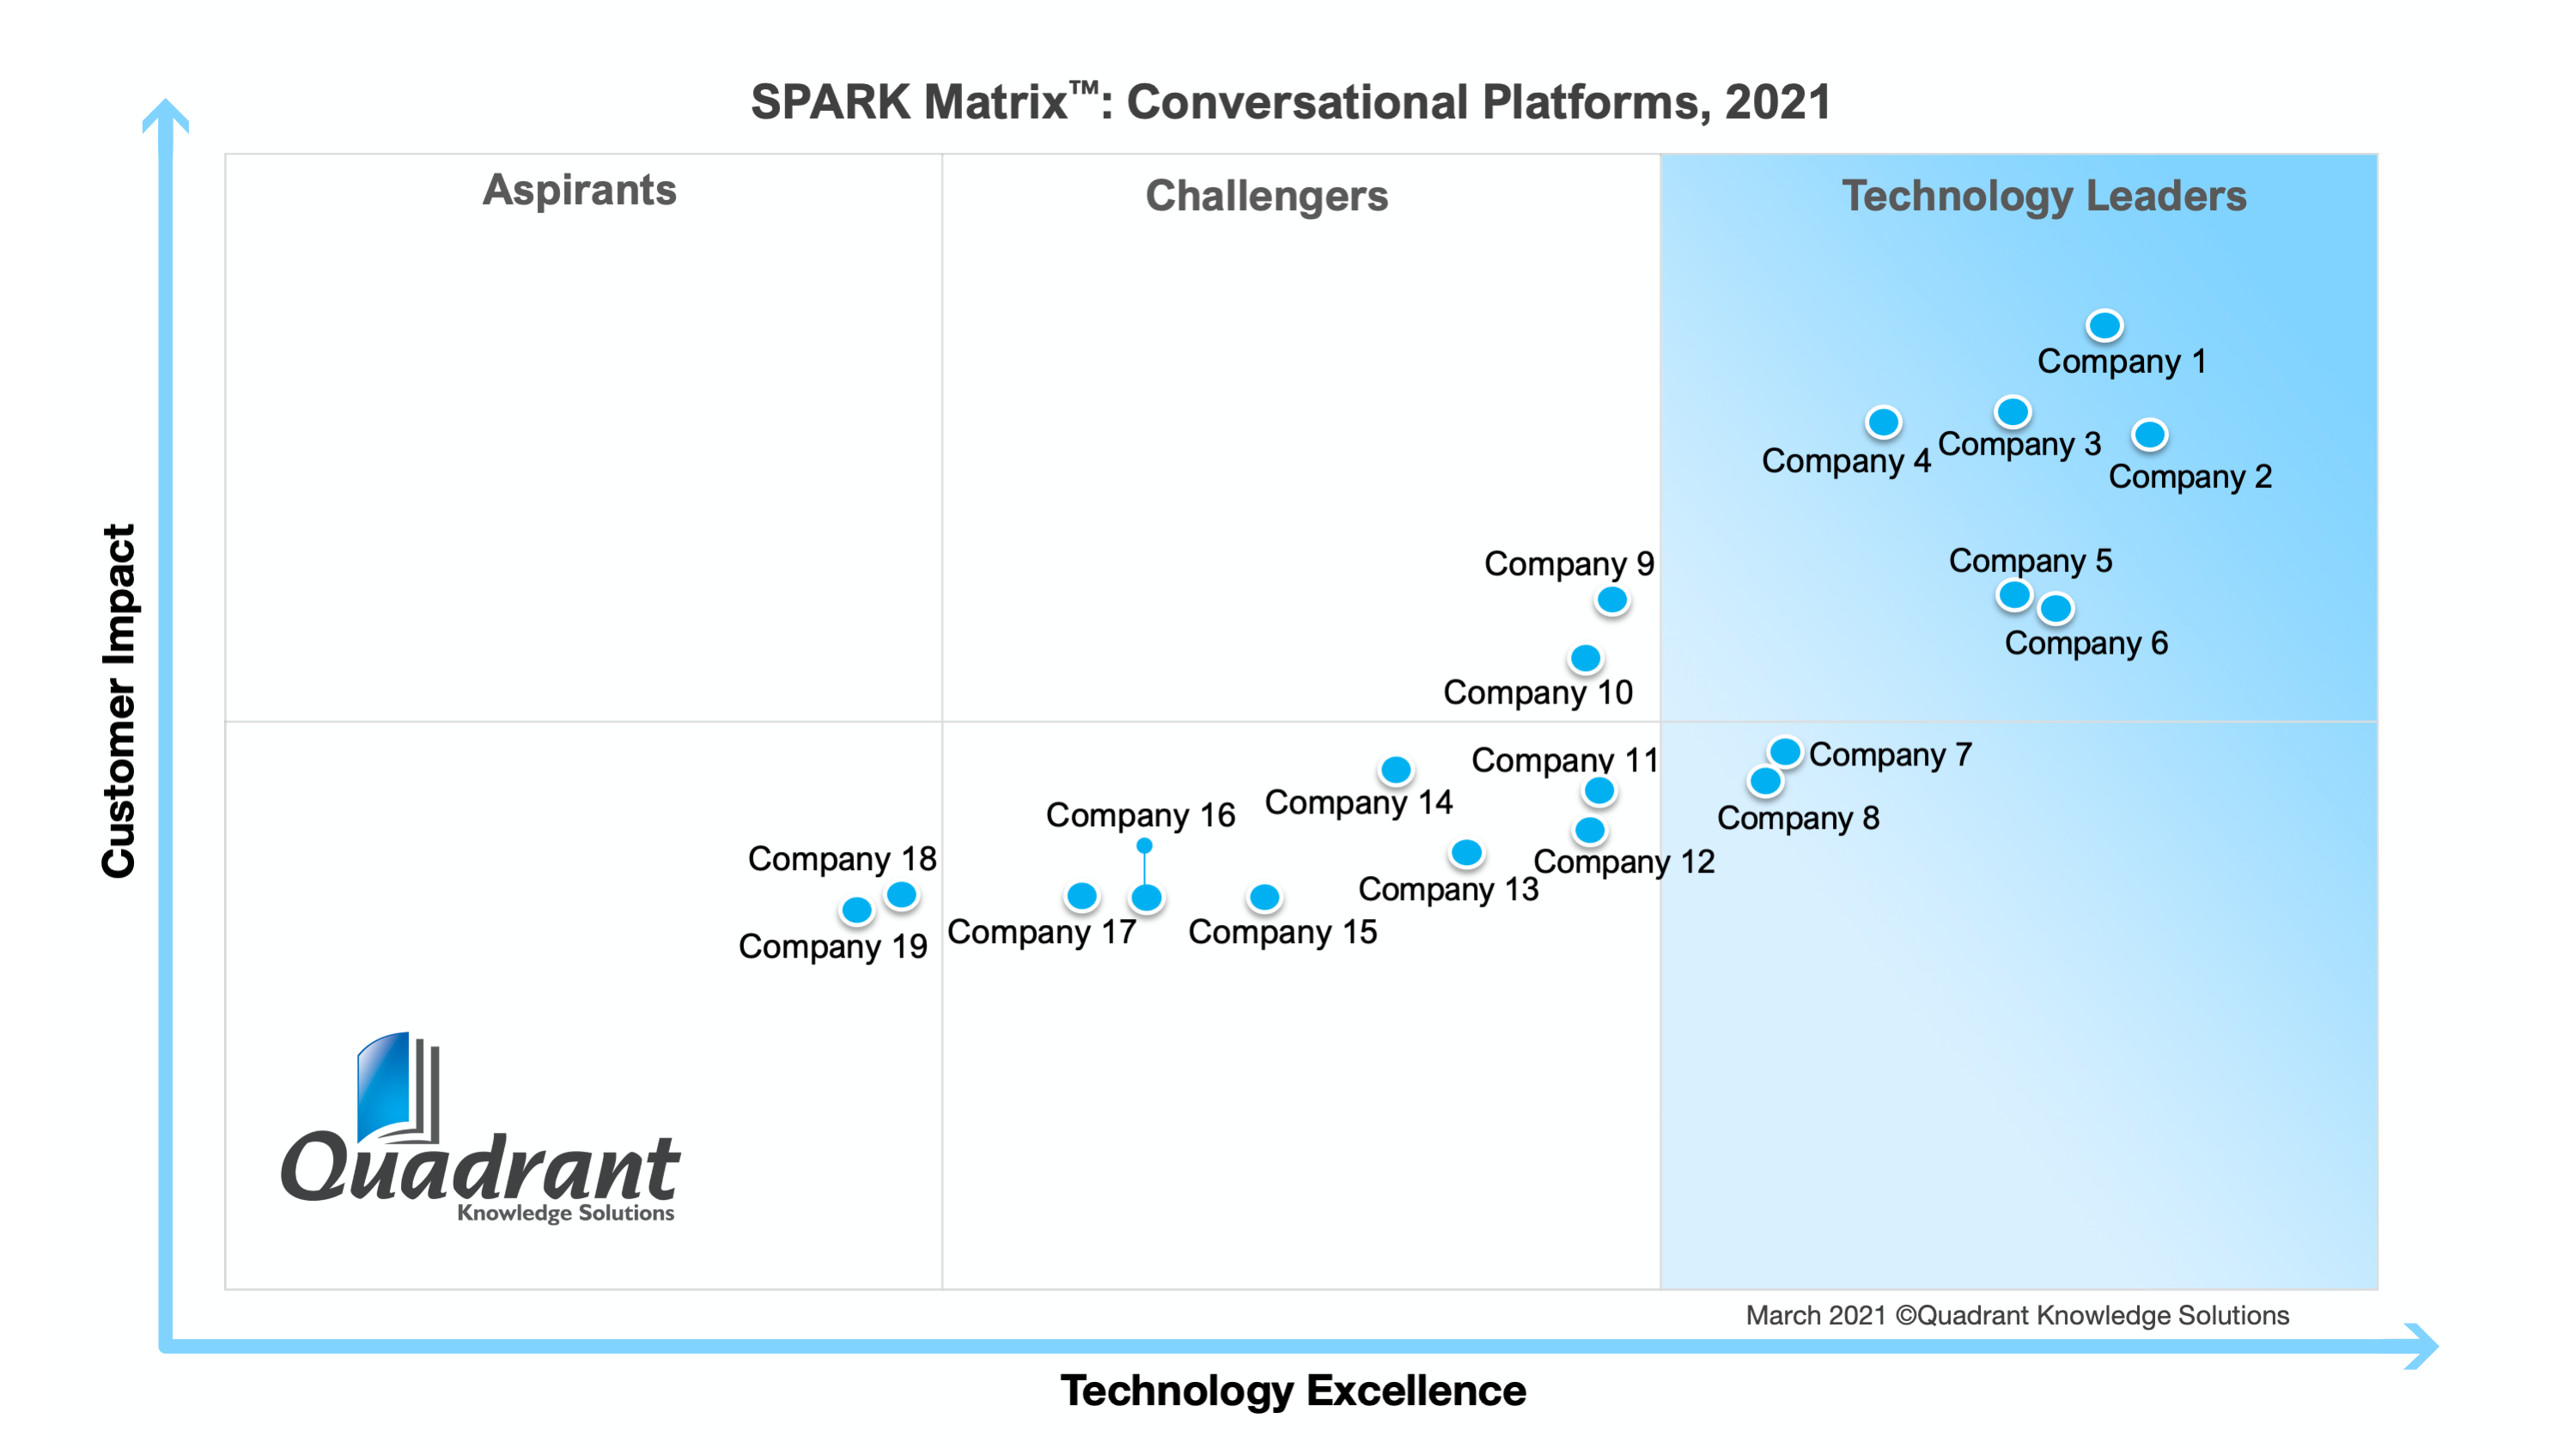 SPARK Matrix-Conversational Platforms-2021-Quadrant Knowledge Solutions